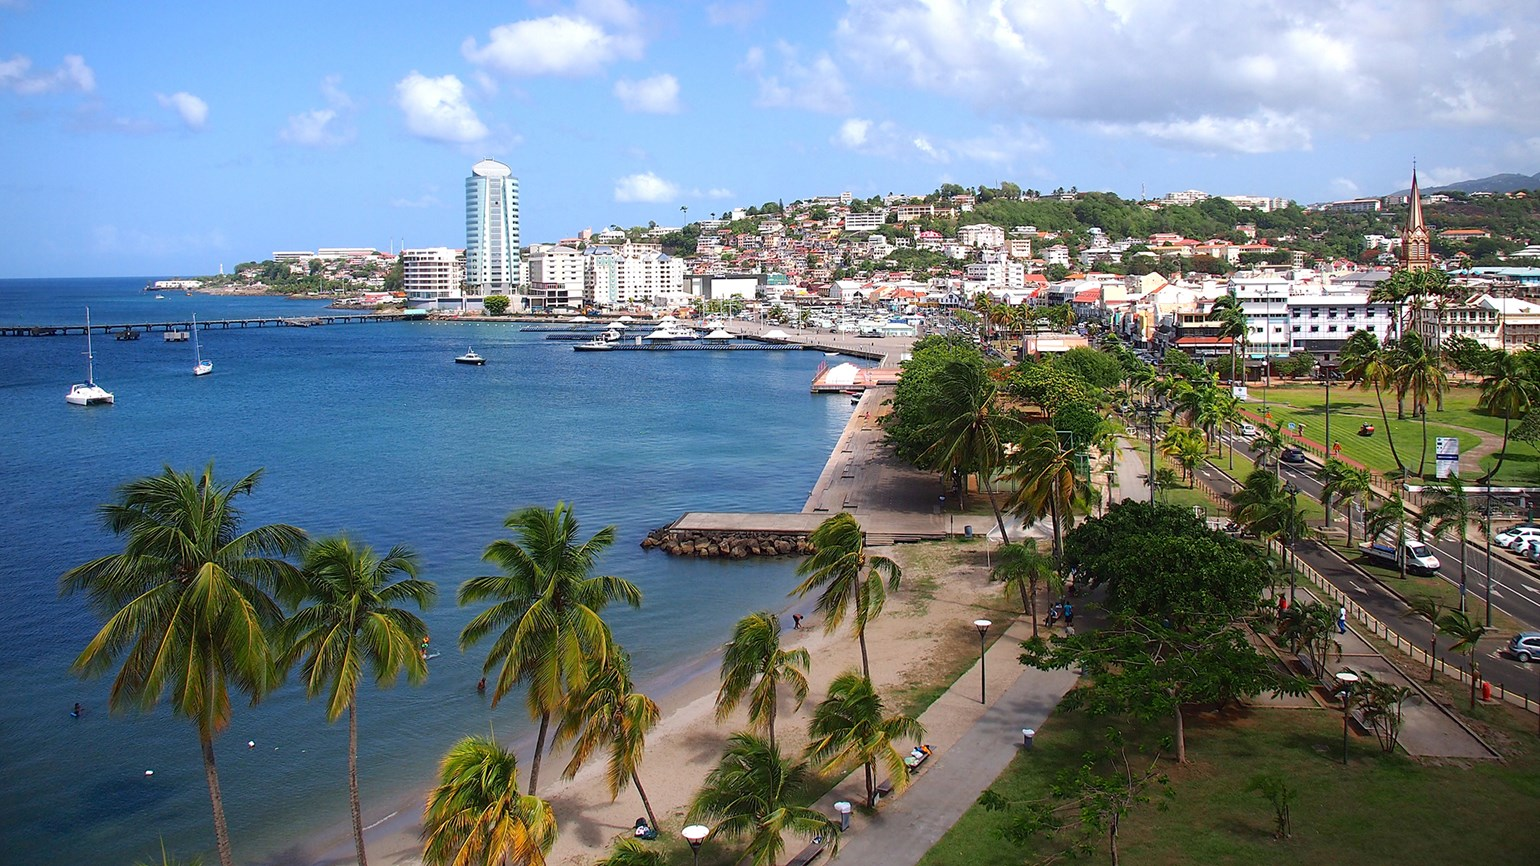 Martinique registered the highest increase in cruise arrivals in the Caribbean region in Q1, up 34.2% over the same period in 2014, according to the Caribbean Tourism Organization.